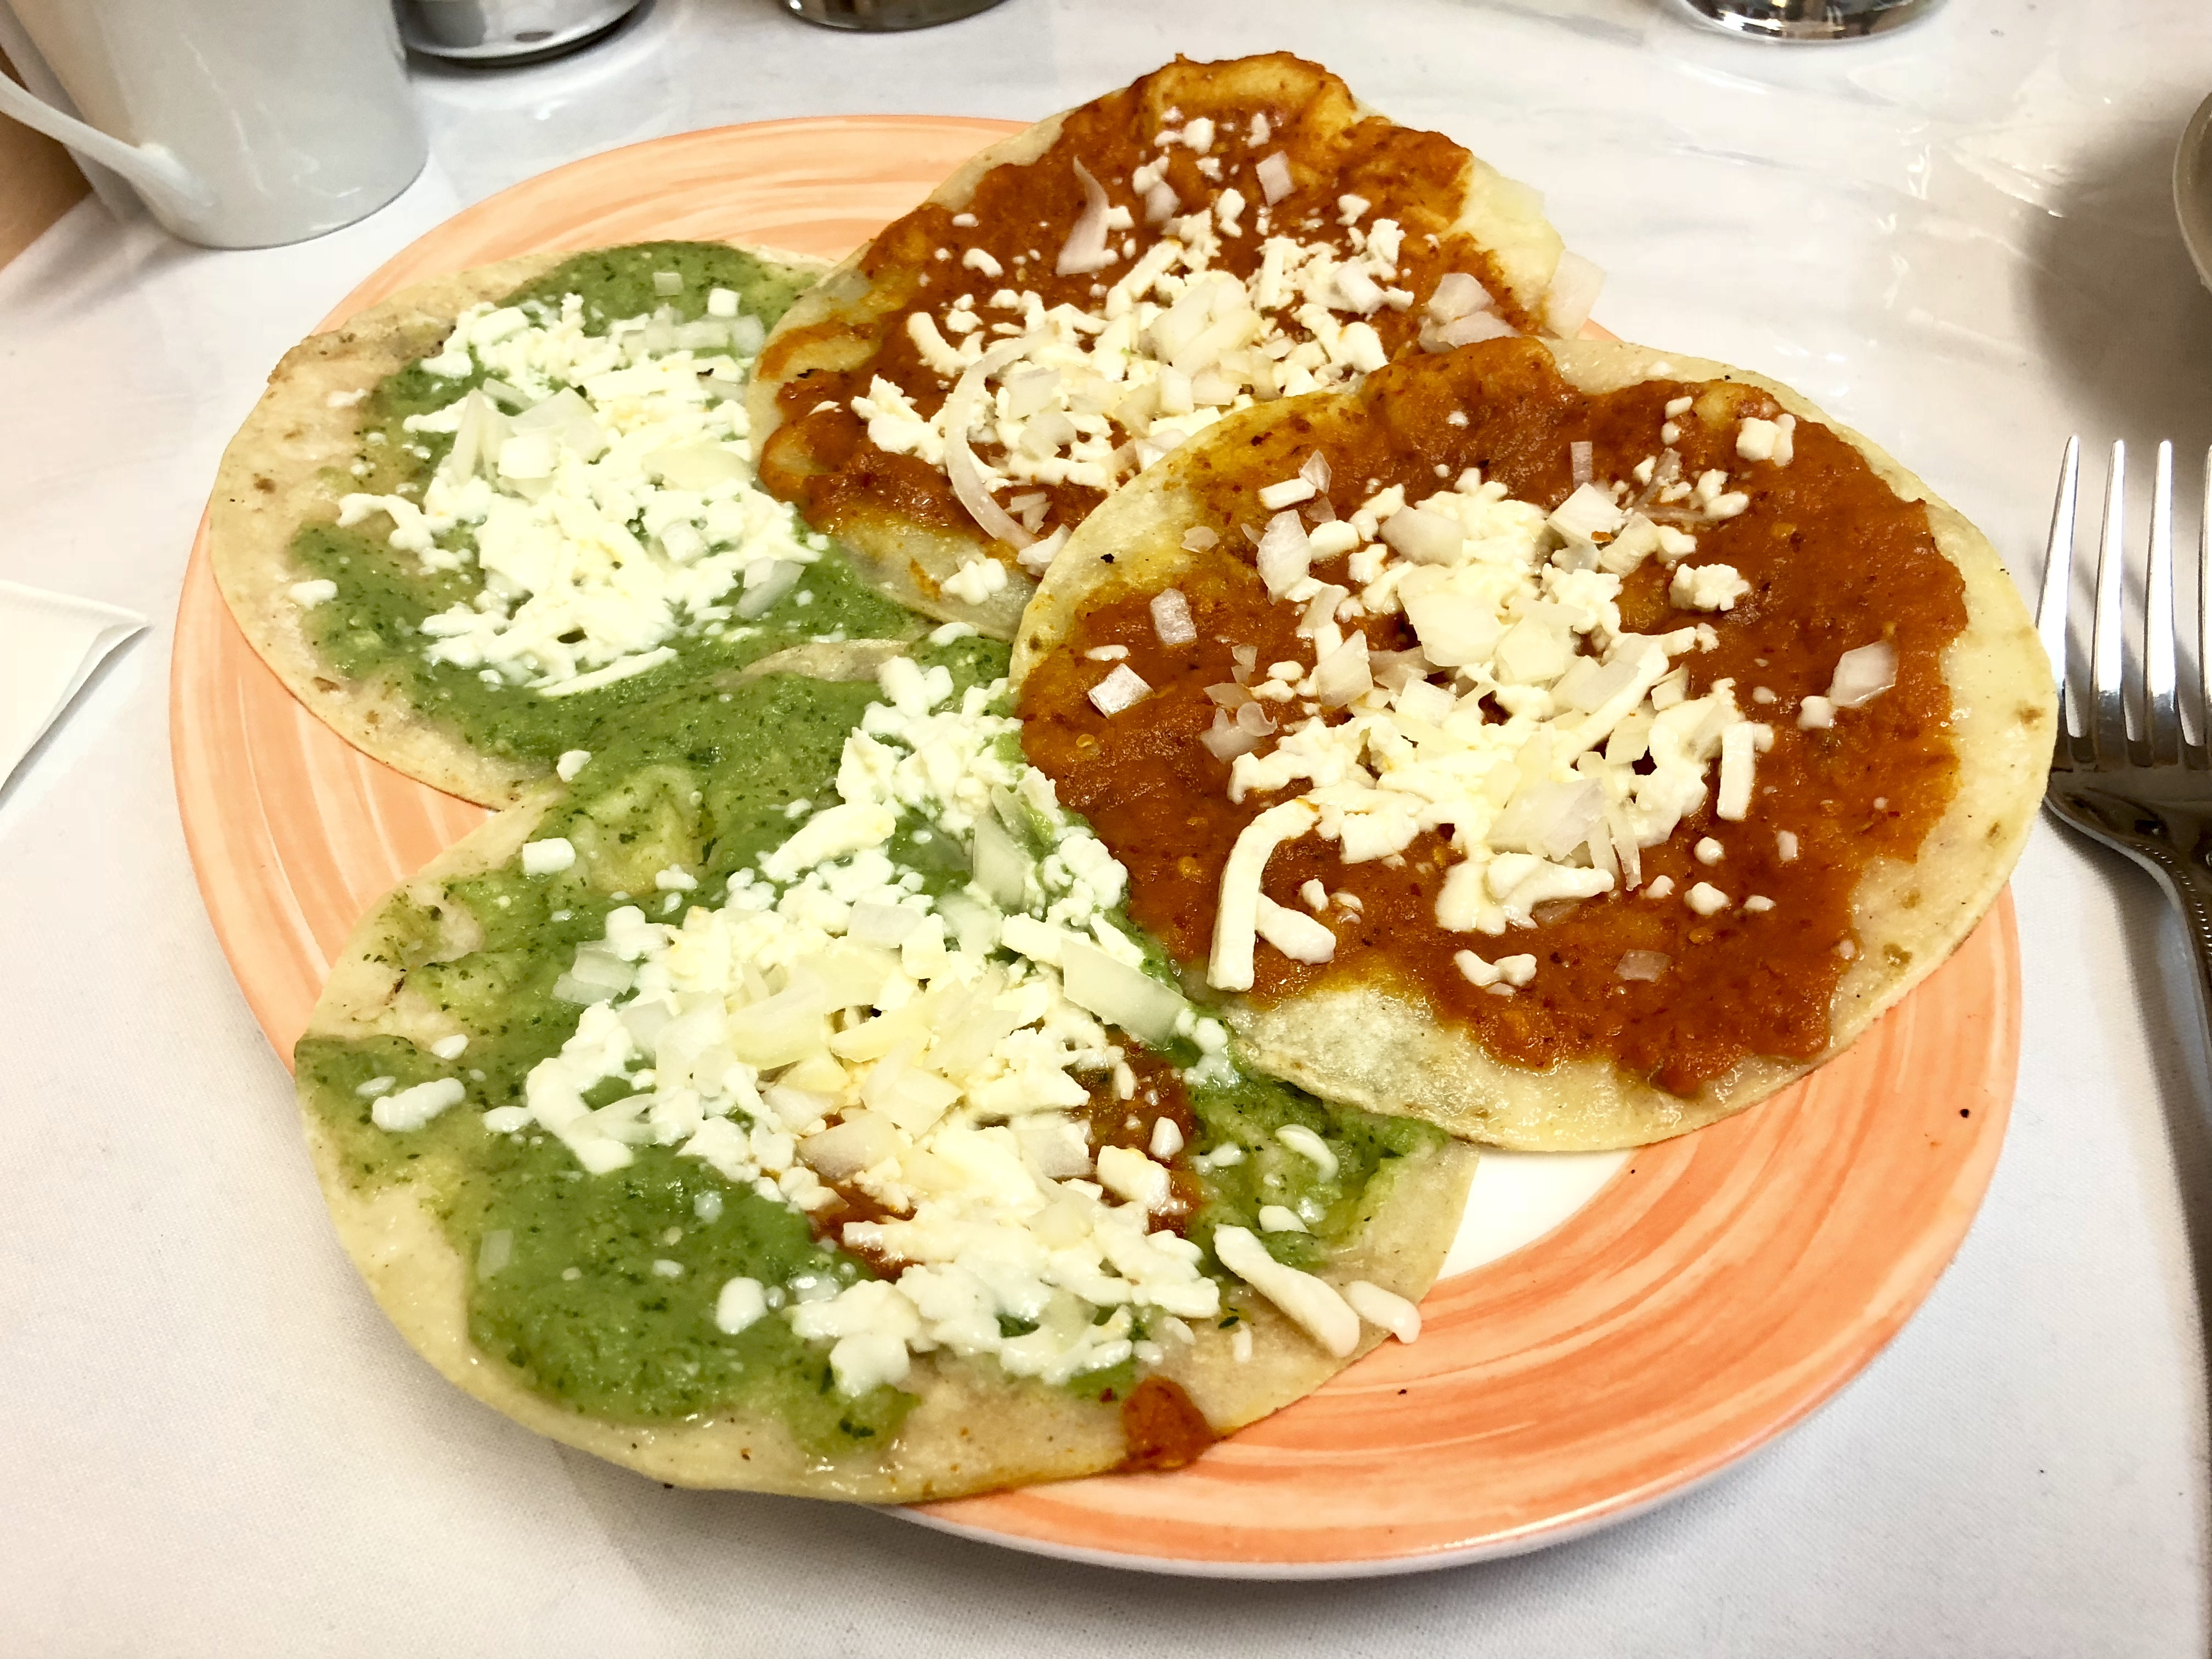 The chalupas at El Rancho Viejo are made from fresh tortillas topped with vibrant salsas, onions and cheese.